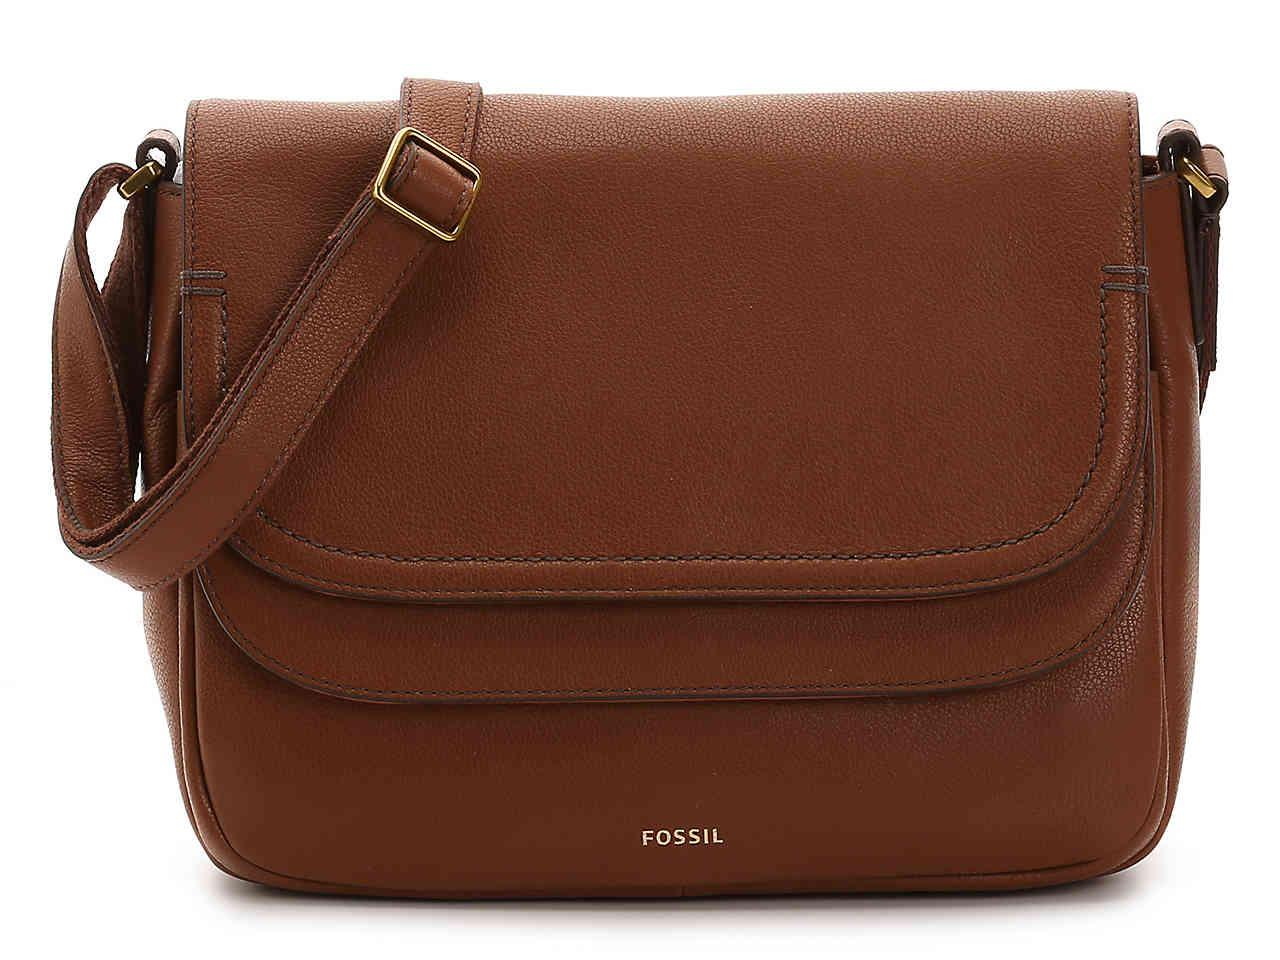 934679ecf1 Lyst - Fossil Peyton Leather Crossbody Bag in Brown